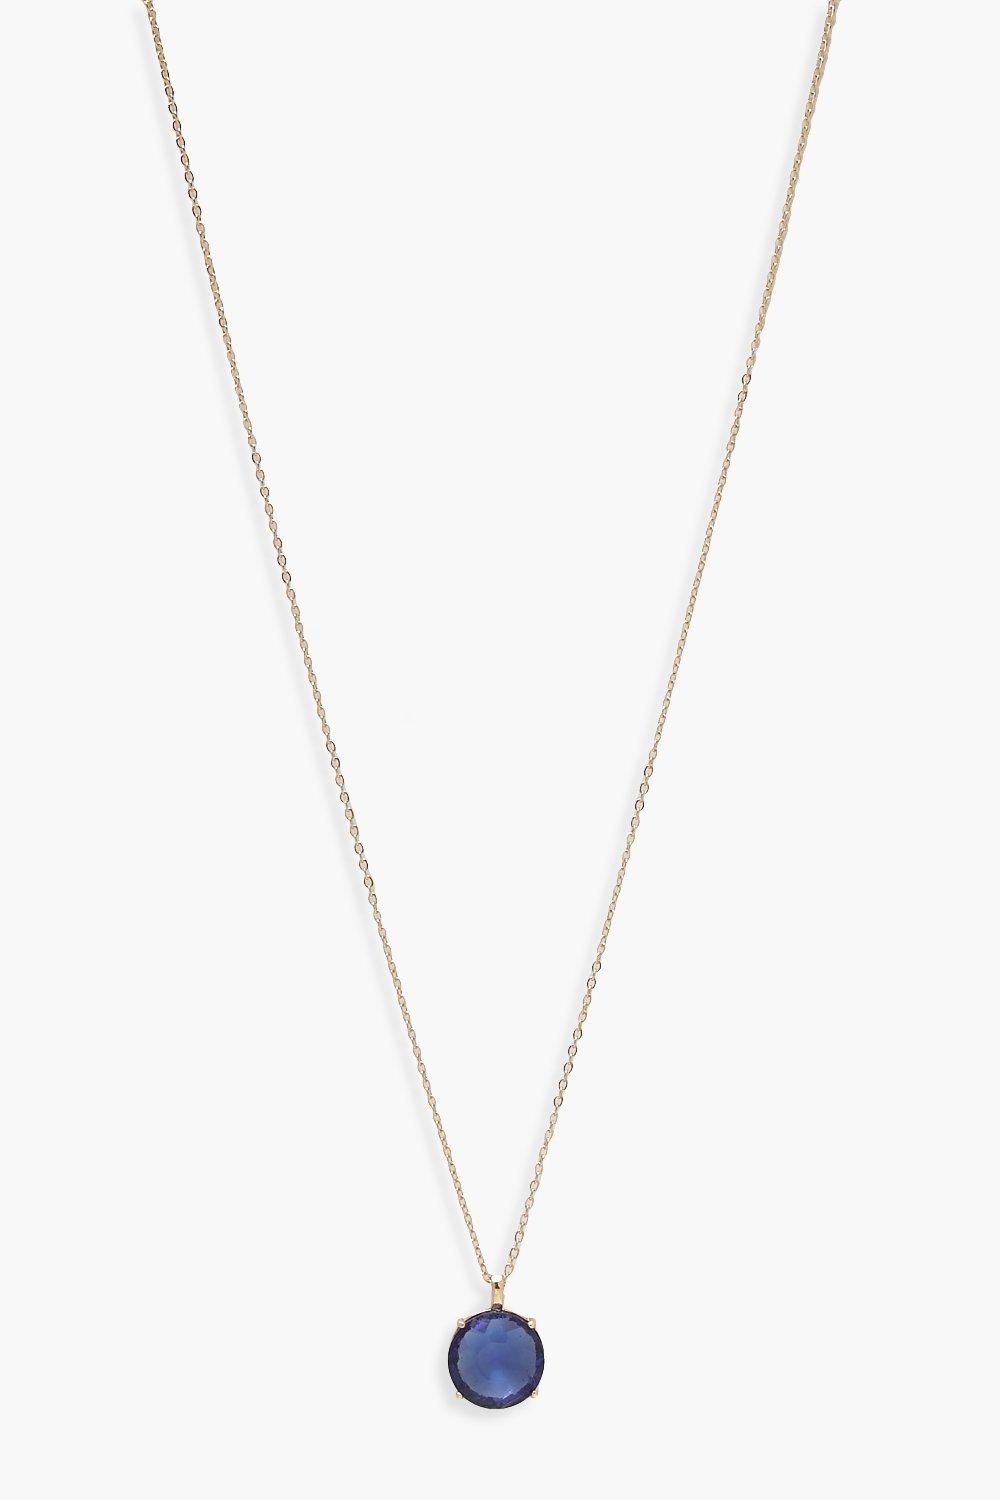 boohoo Womens December Birthstone Pendant Necklace - Blue - One Size, Blue